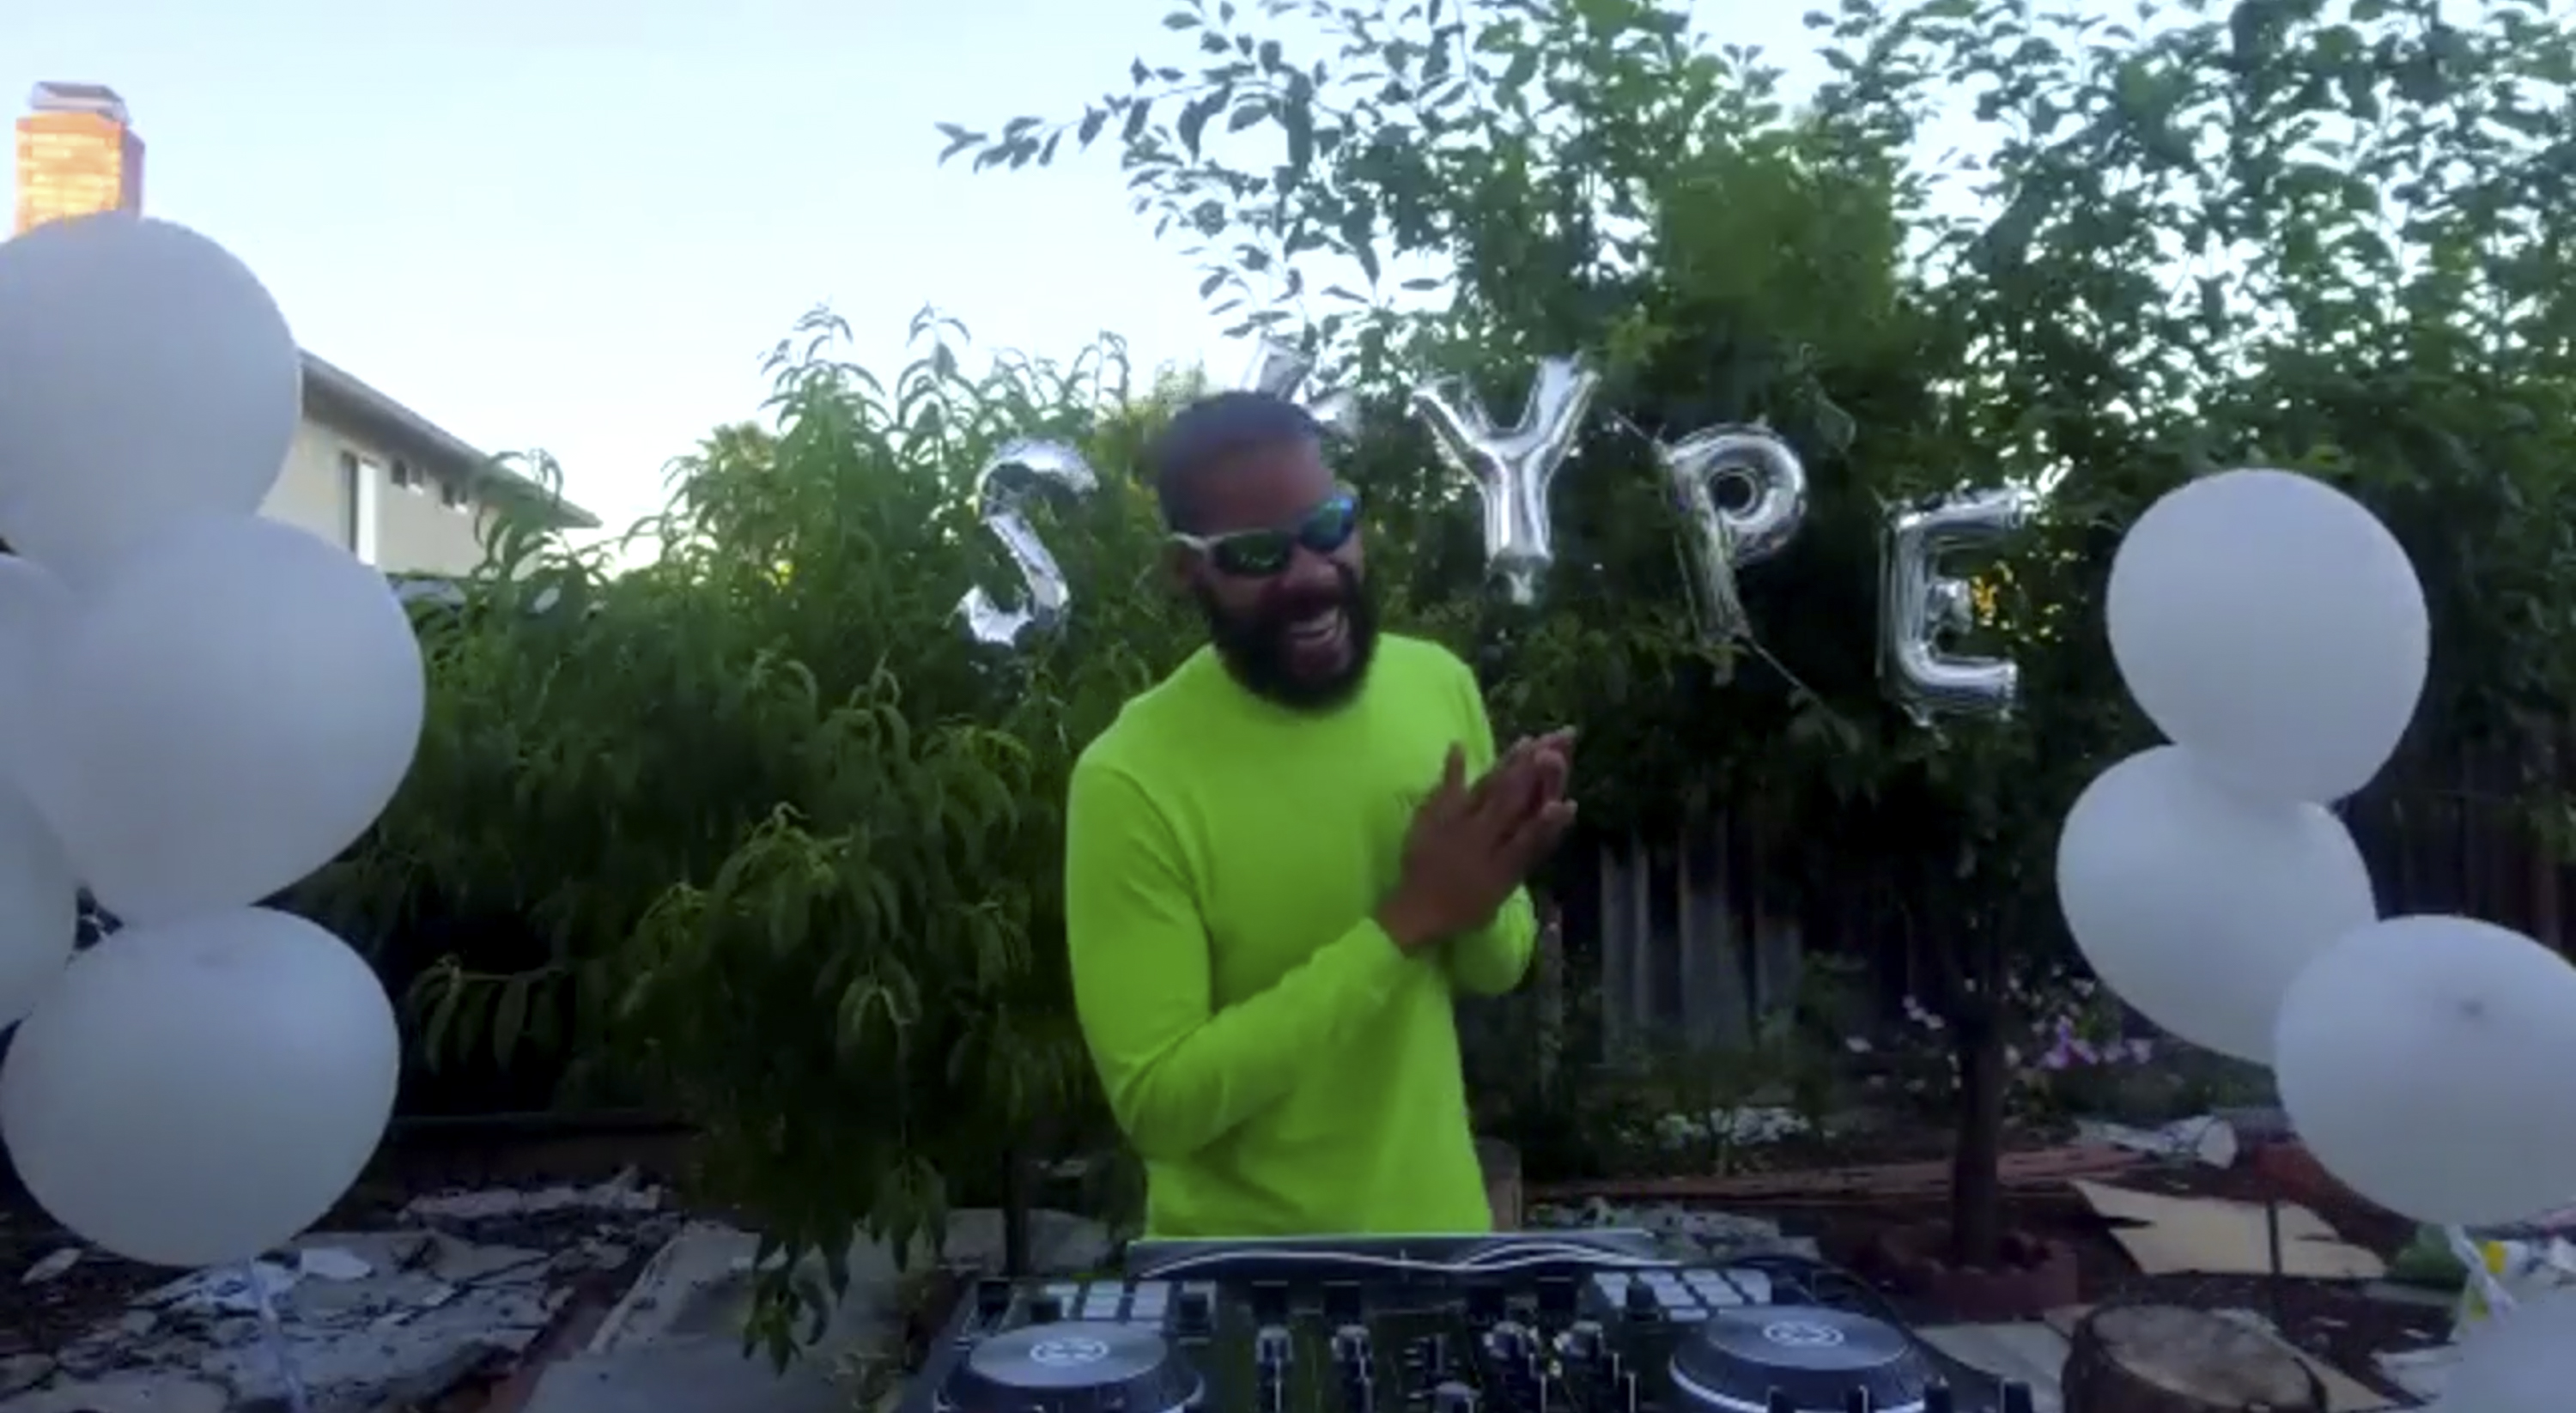 Photograph of musician Skype Williams DJing over zoom for MoMA PS1